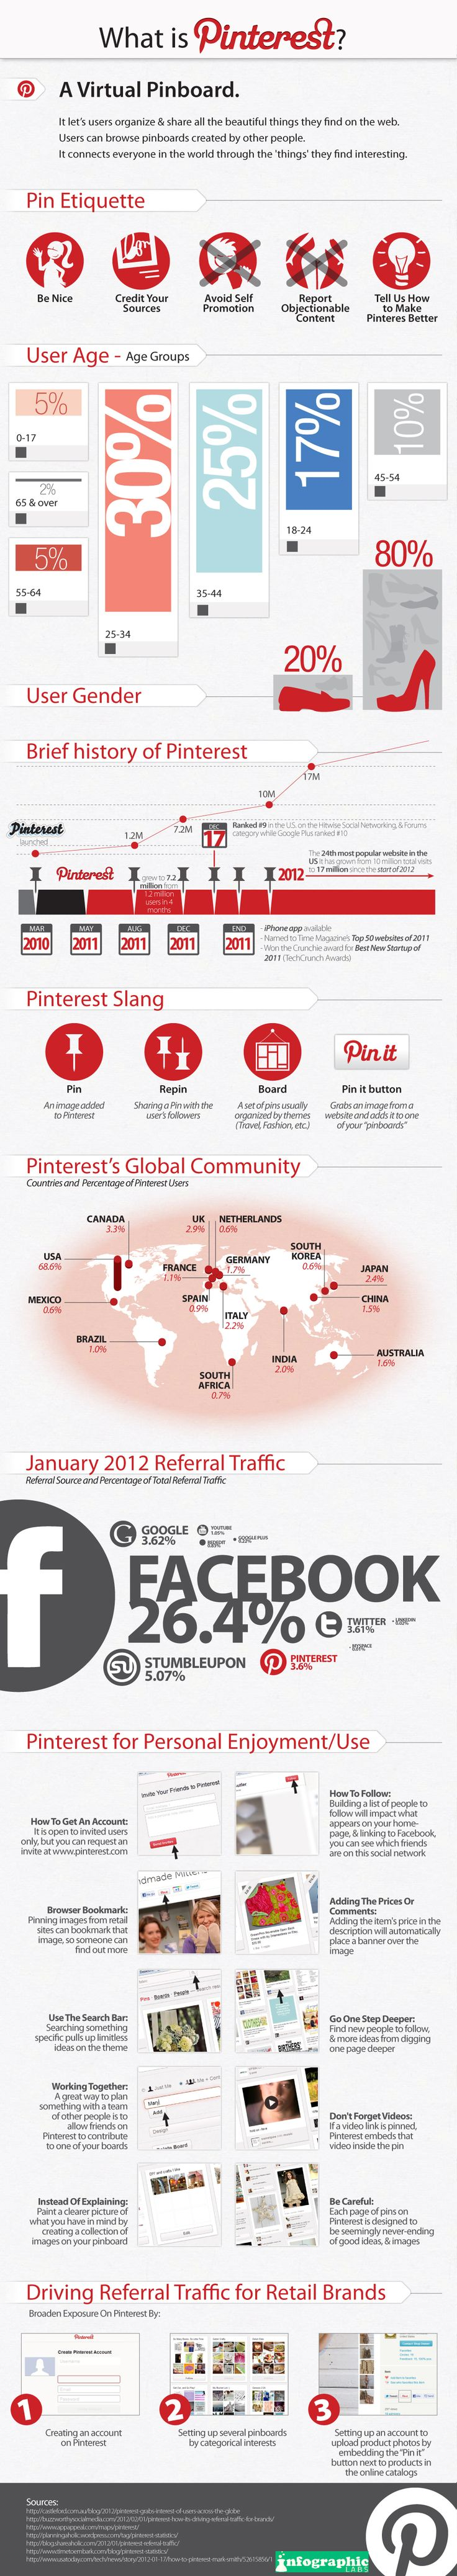 What Is Pinterest? - Infographic